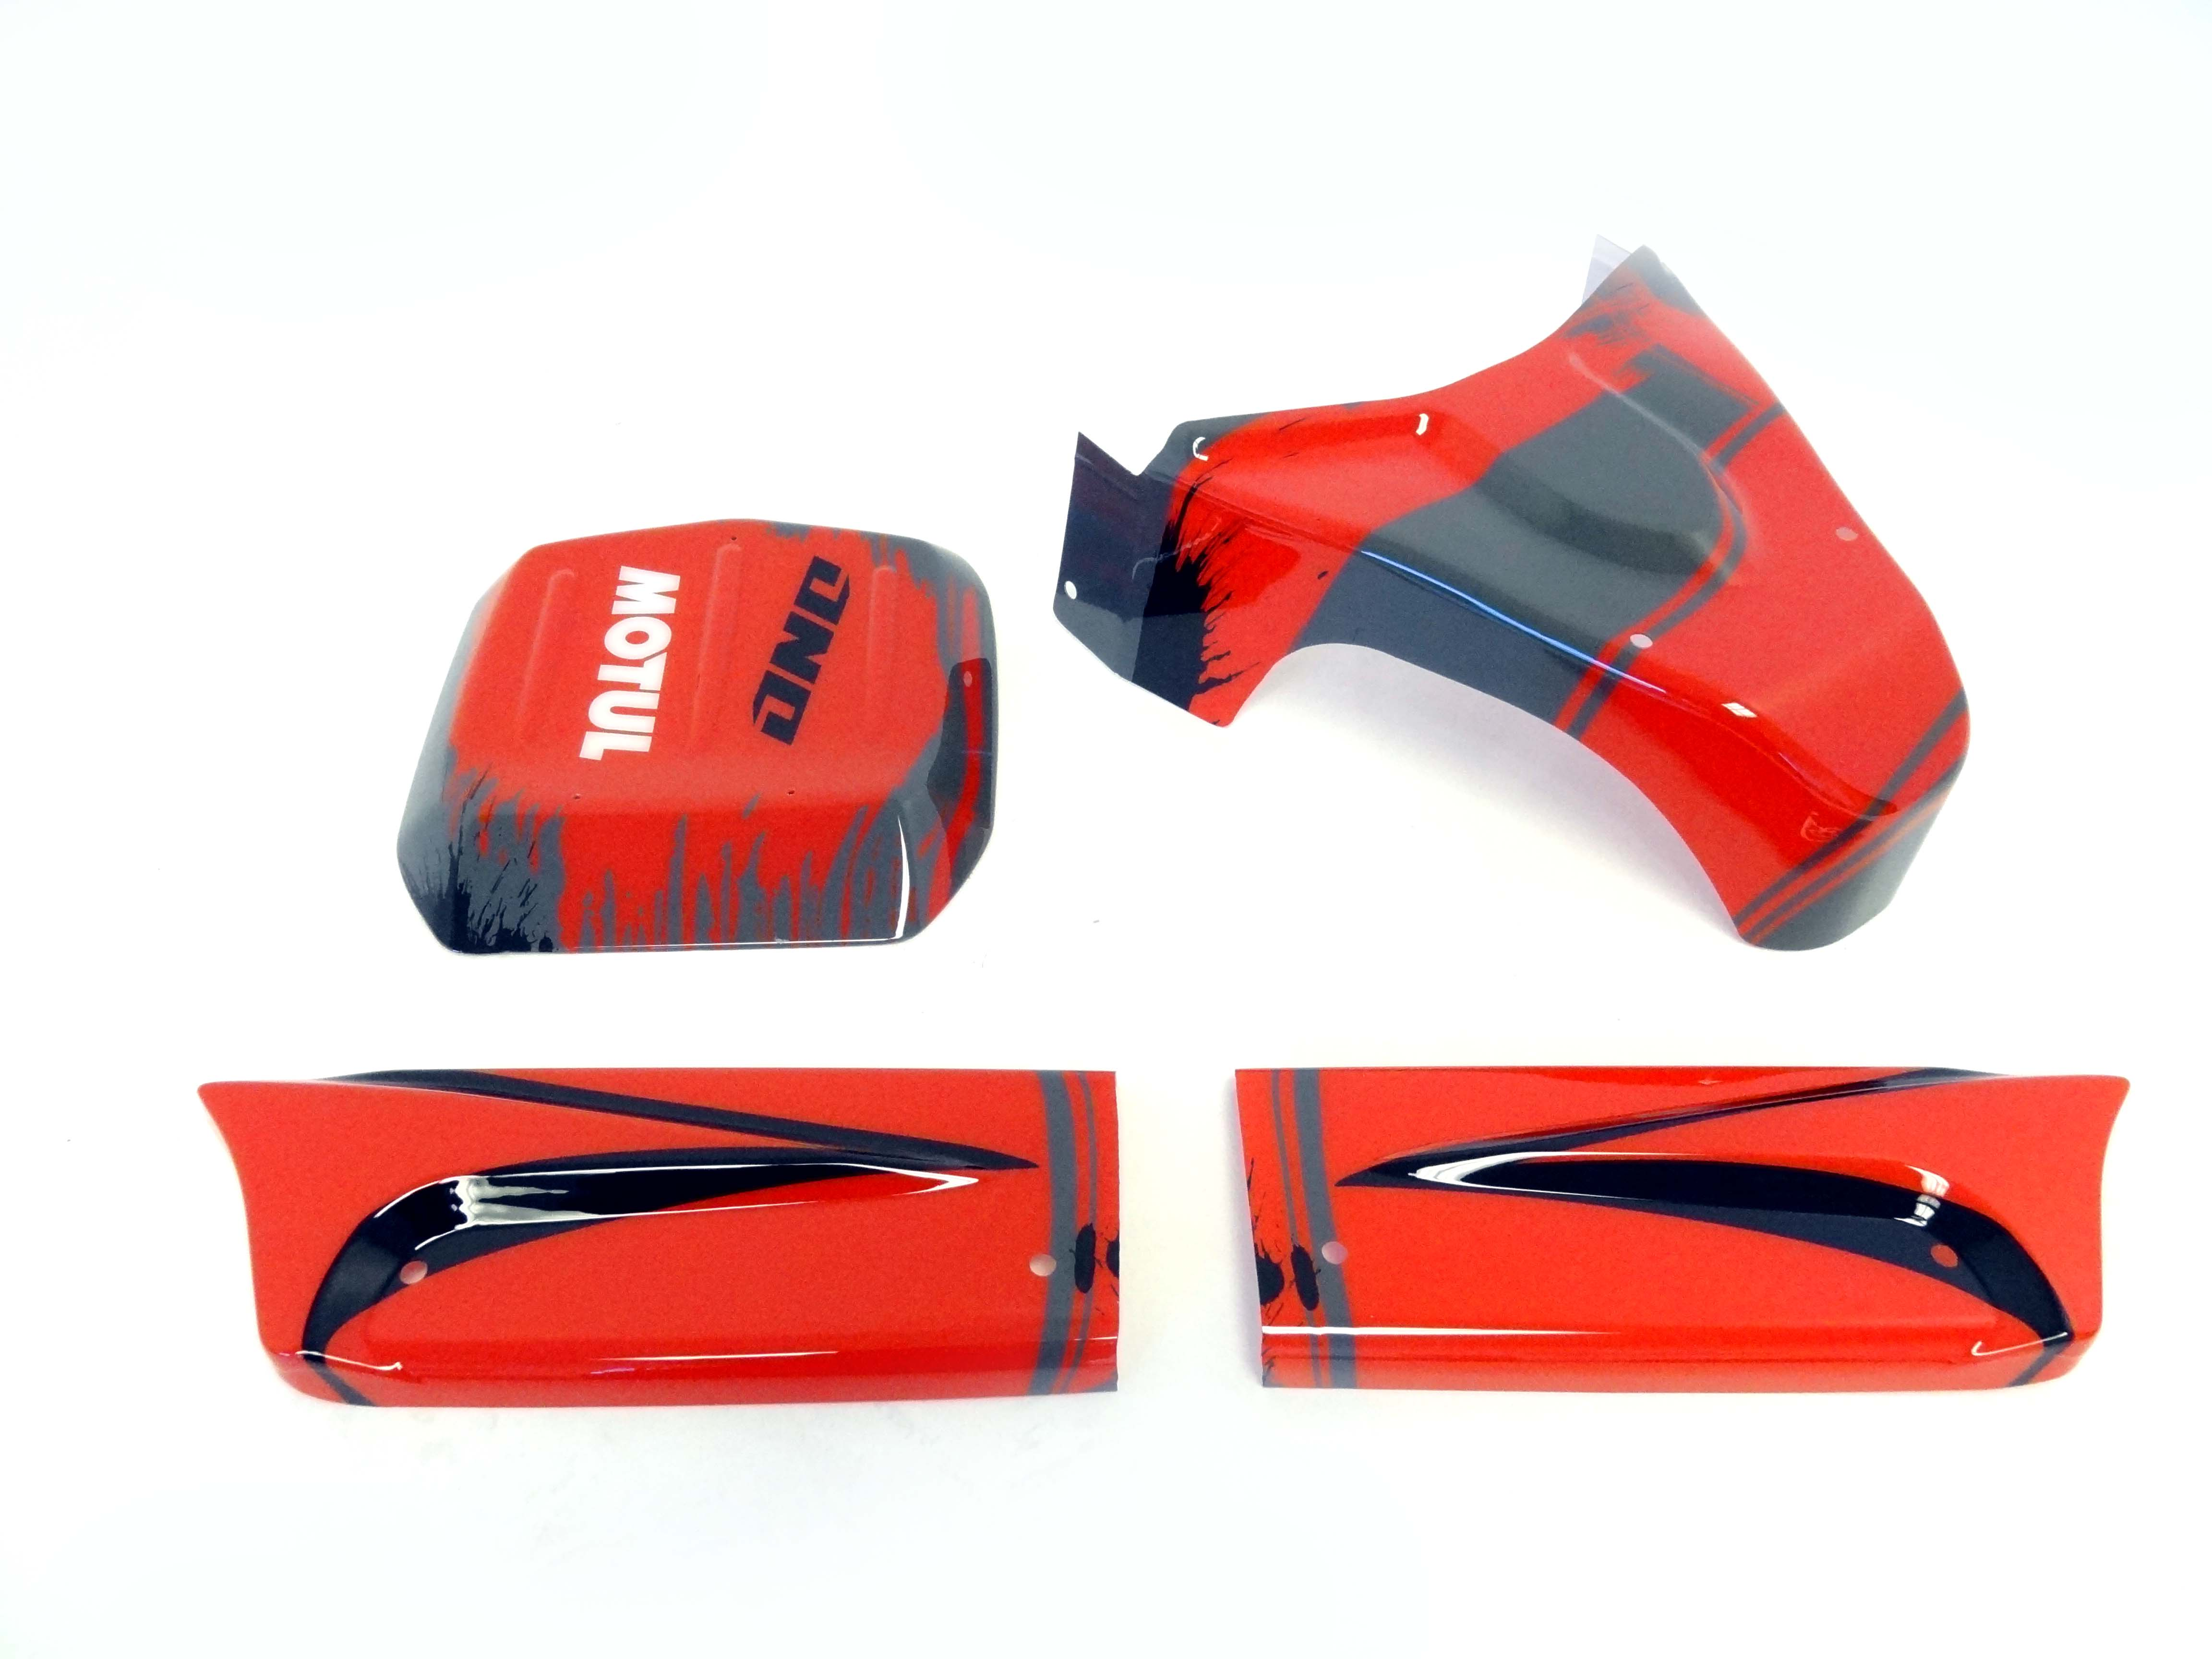 Panel Kit for Internal Roll Cage (red/black)